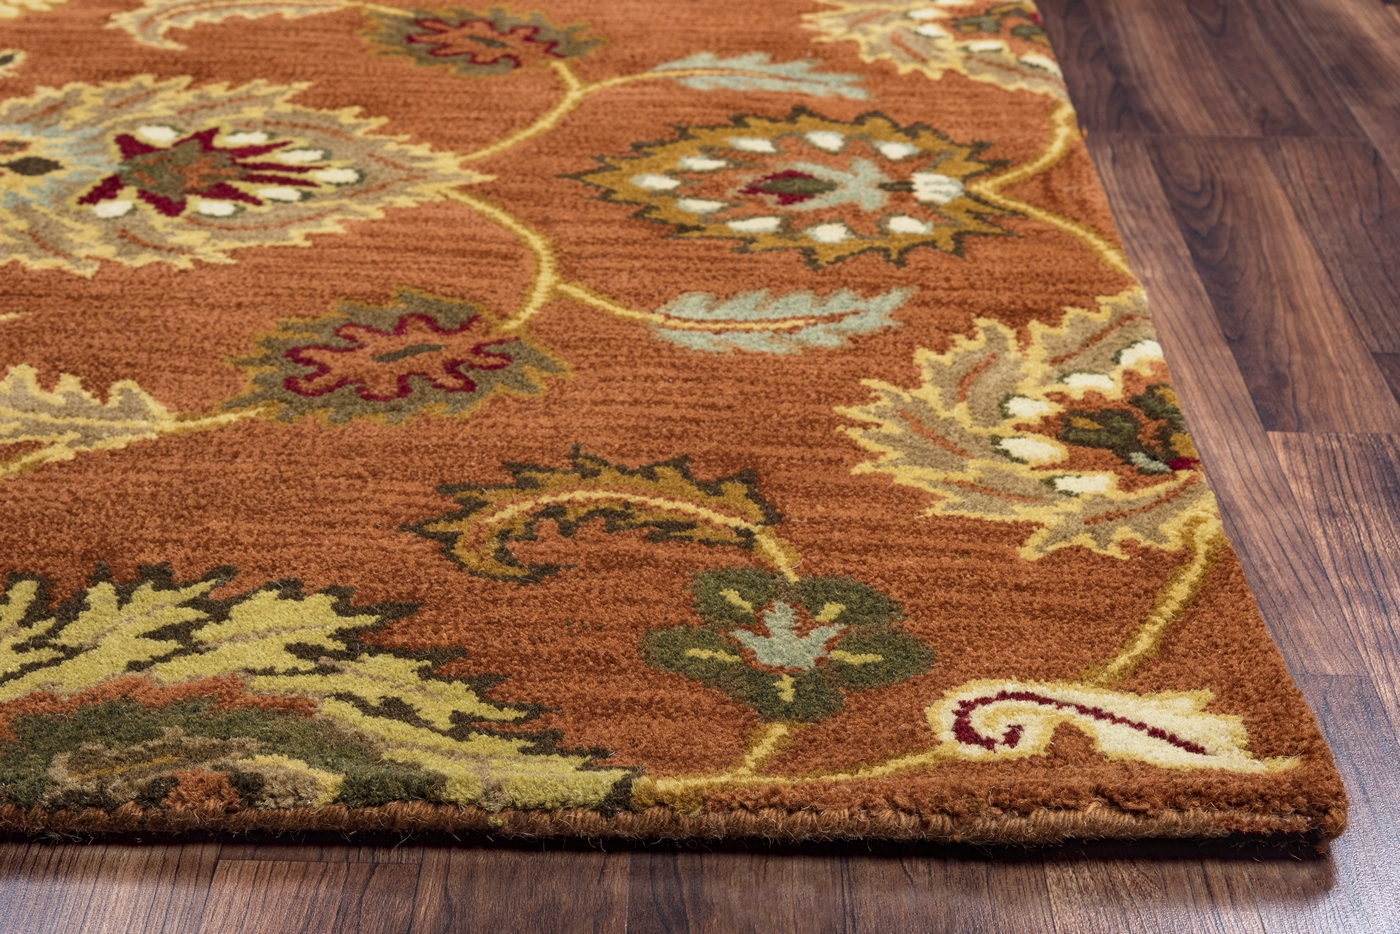 Valintino Ornate Mums Wool Area Rug In Rust Brown Burgundy